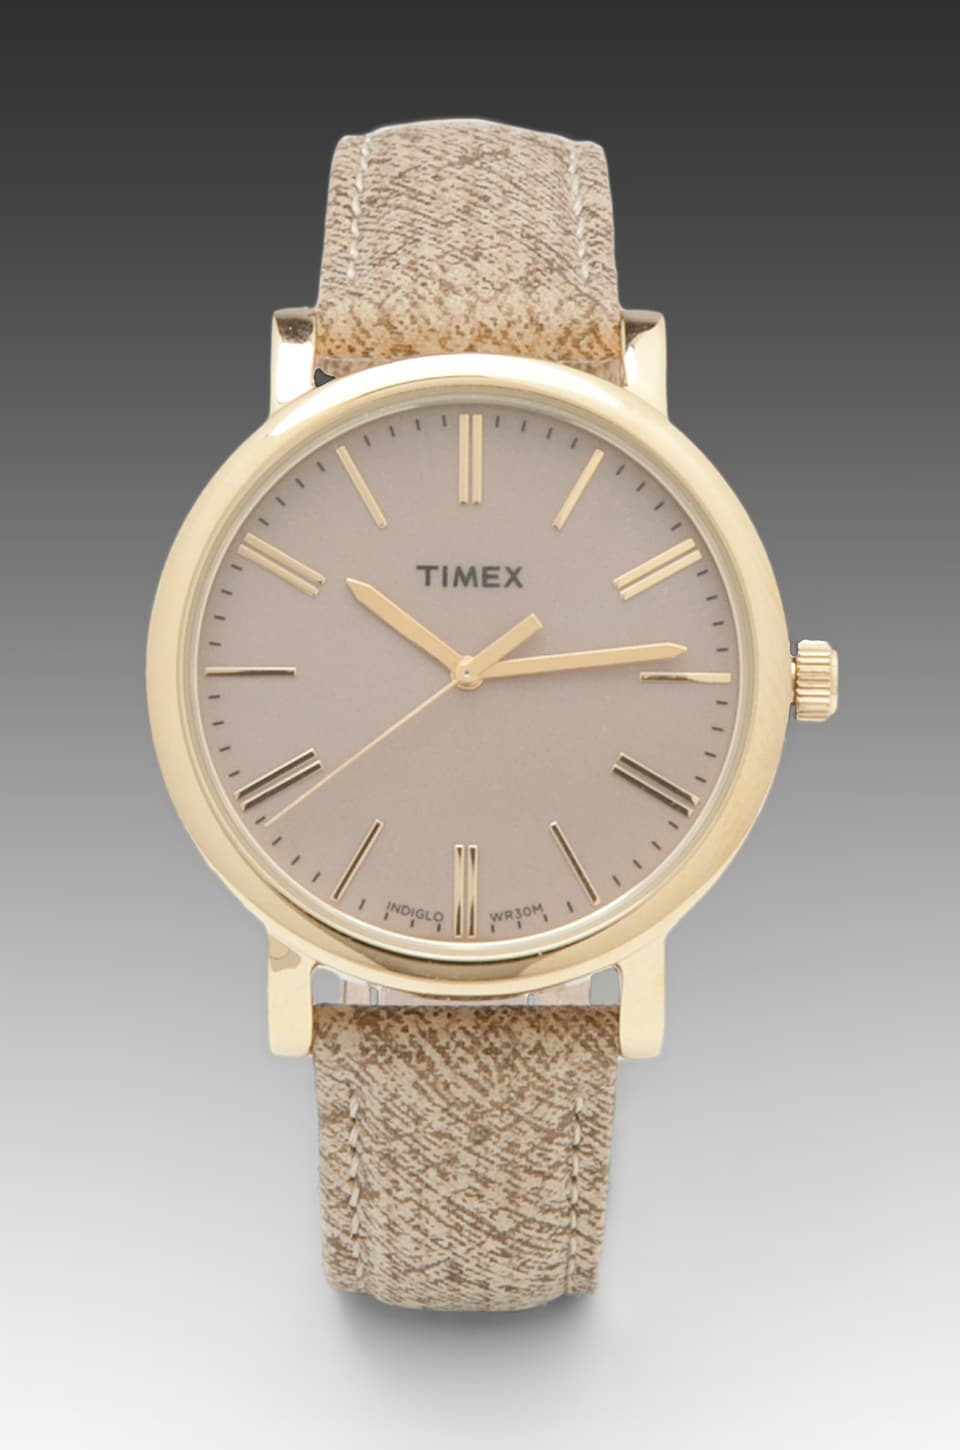 Timex Originals Classic Round Watch with Braided Strap in Goldtone/ Taupe